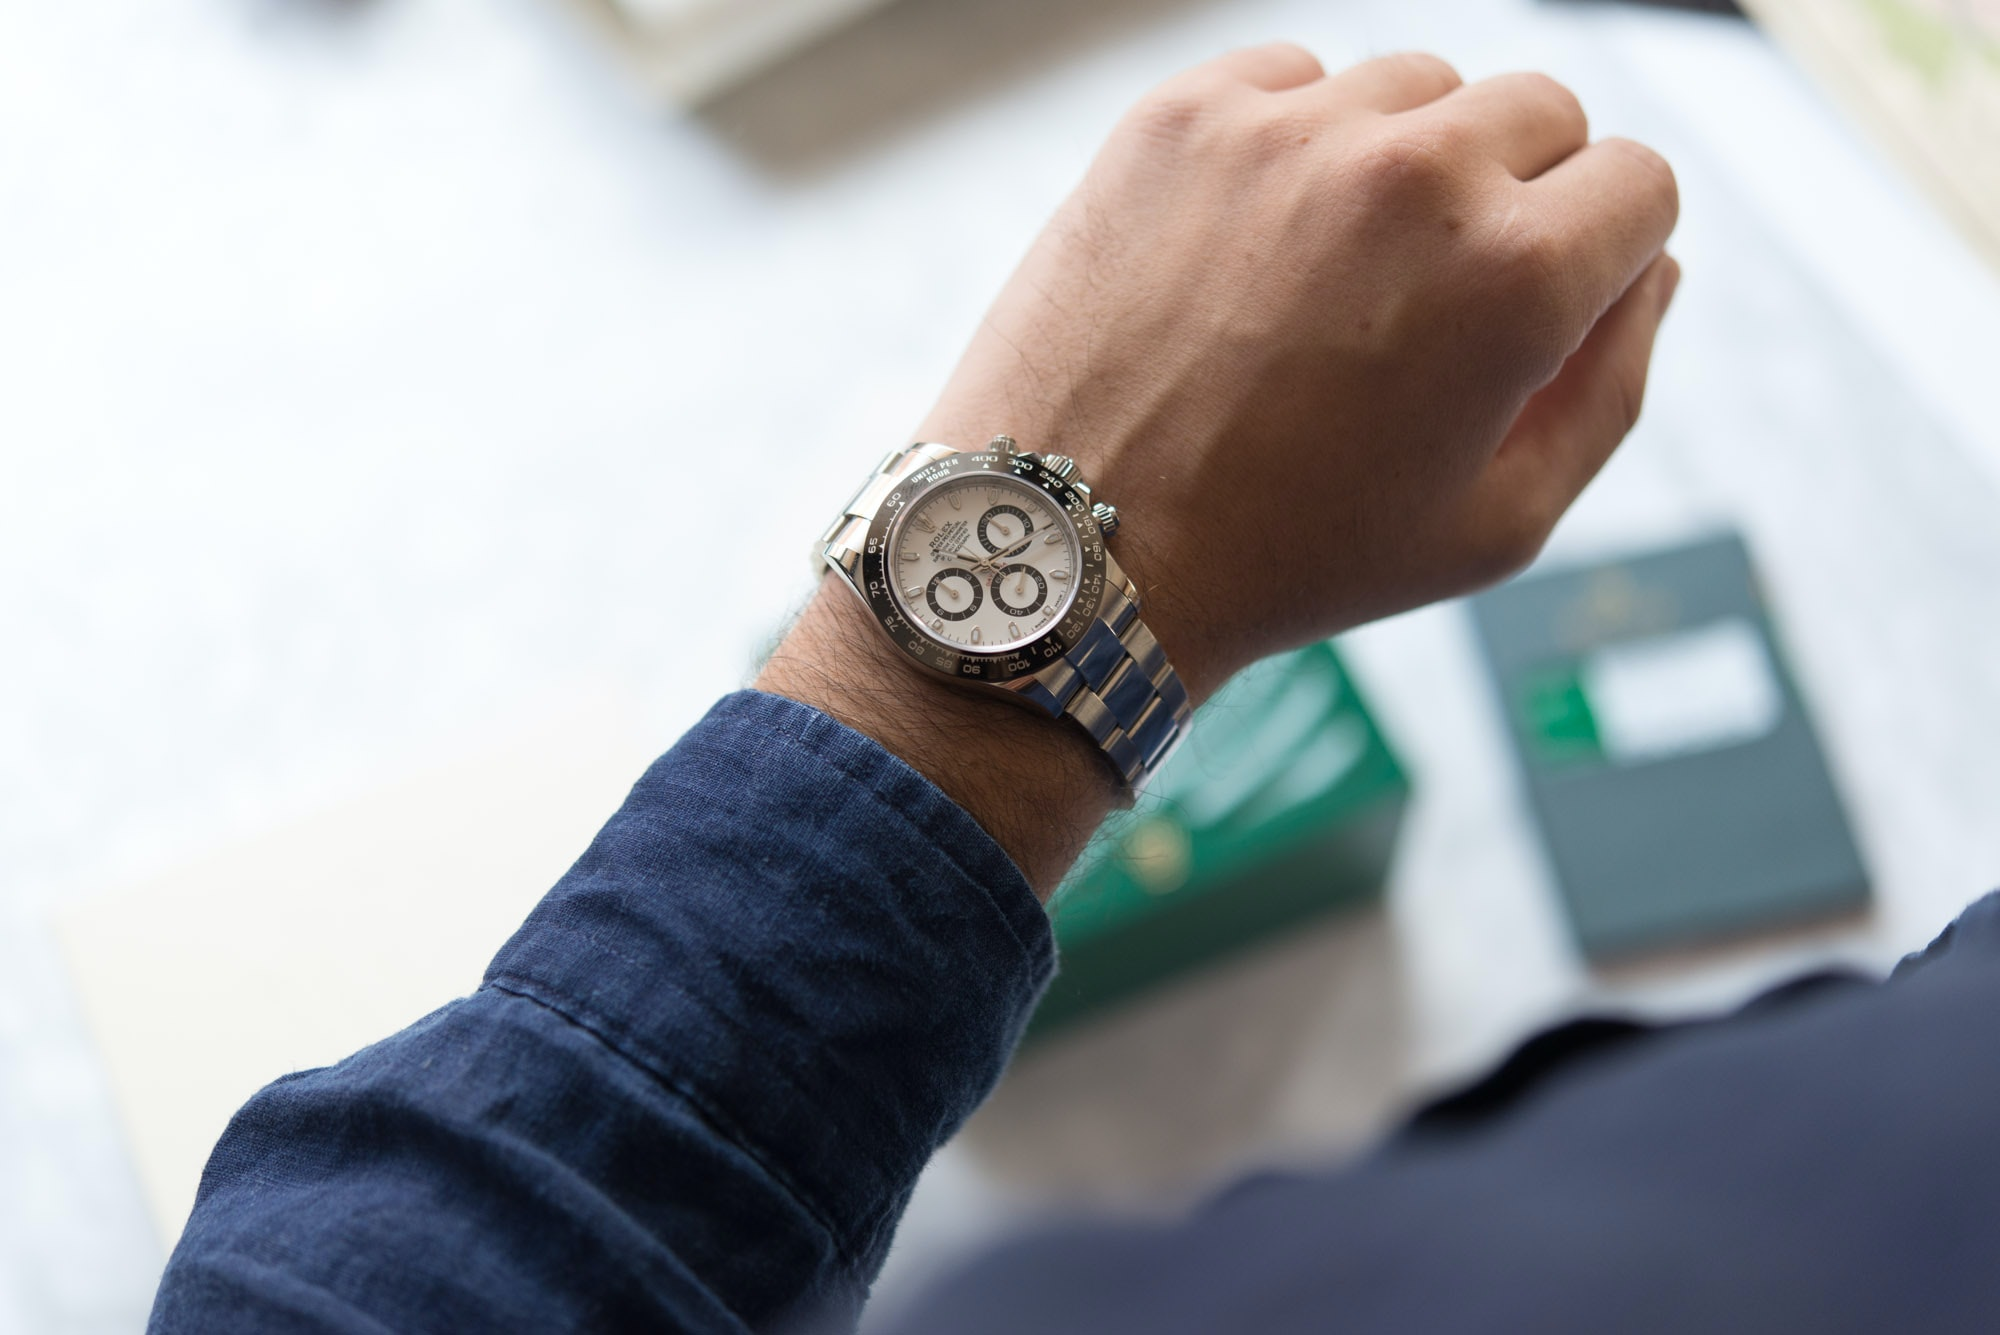 In Conversation: John Mayer And Ben Clymer Discuss The New Rolex Daytona As Early Owners In Conversation: John Mayer And Ben Clymer Discuss The New Rolex Daytona As Early Owners JohnMayerNewDaytona 18